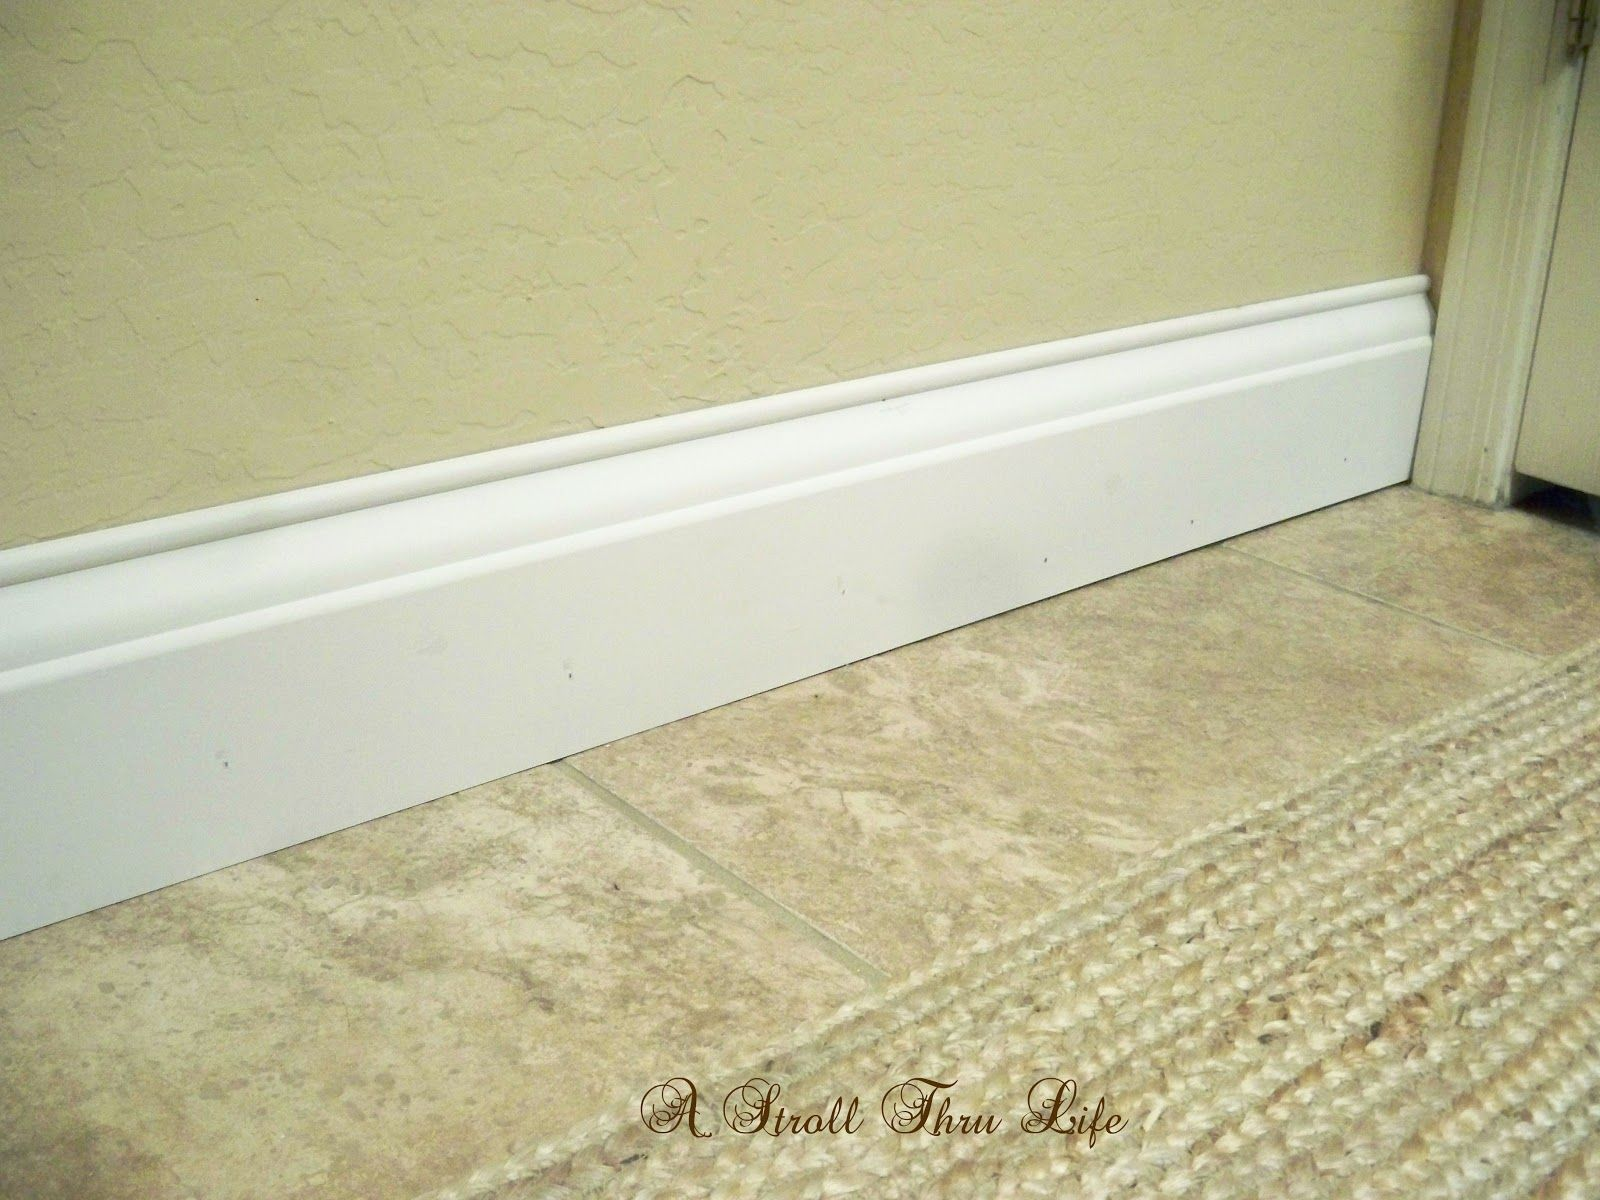 Install Wide Baseboard Molding Over Existing Narrow Baseboard A Stroll Thru Life Baseboard Molding Bathroom Baseboard Baseboard Trim